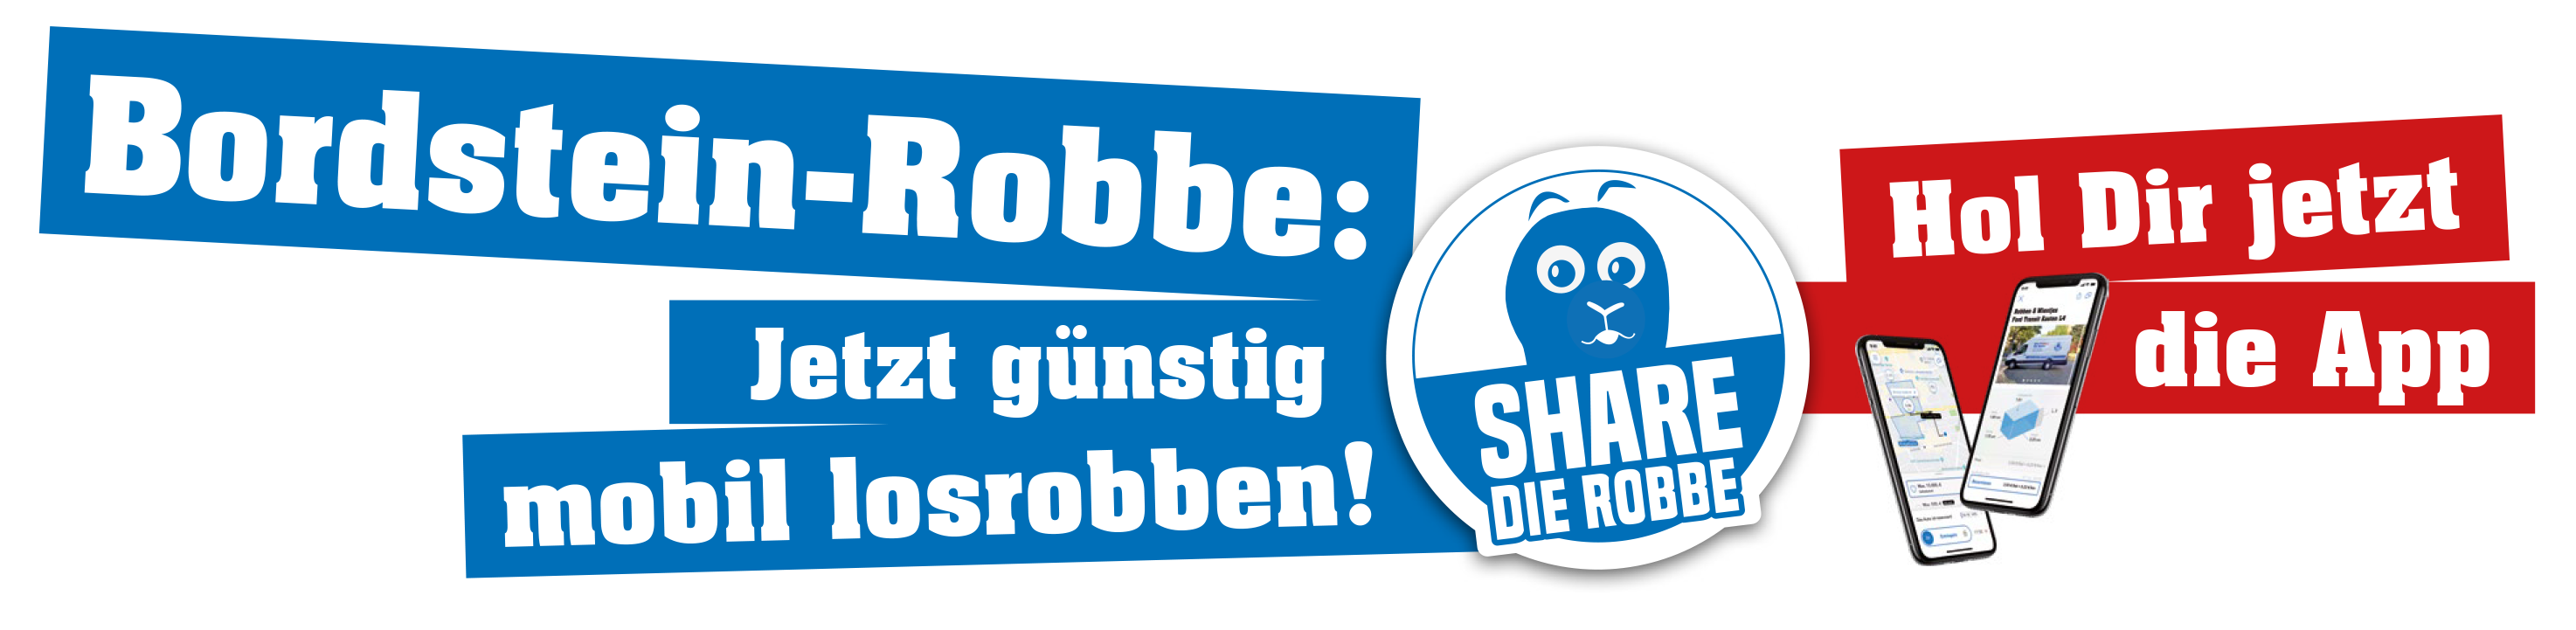 share-die-robbe-Banner